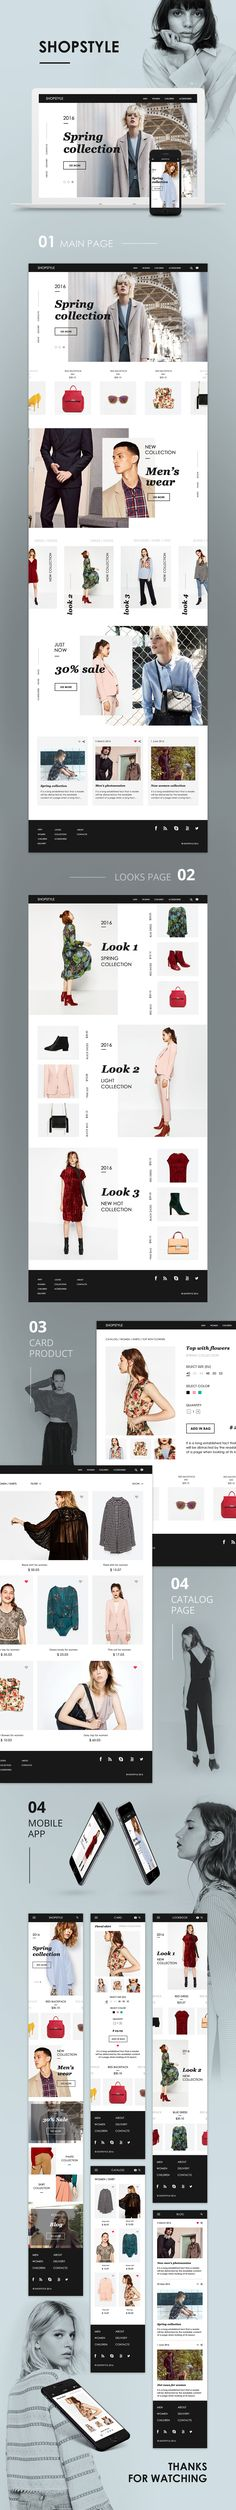 Website for clothing store UI/ UX design on Behance